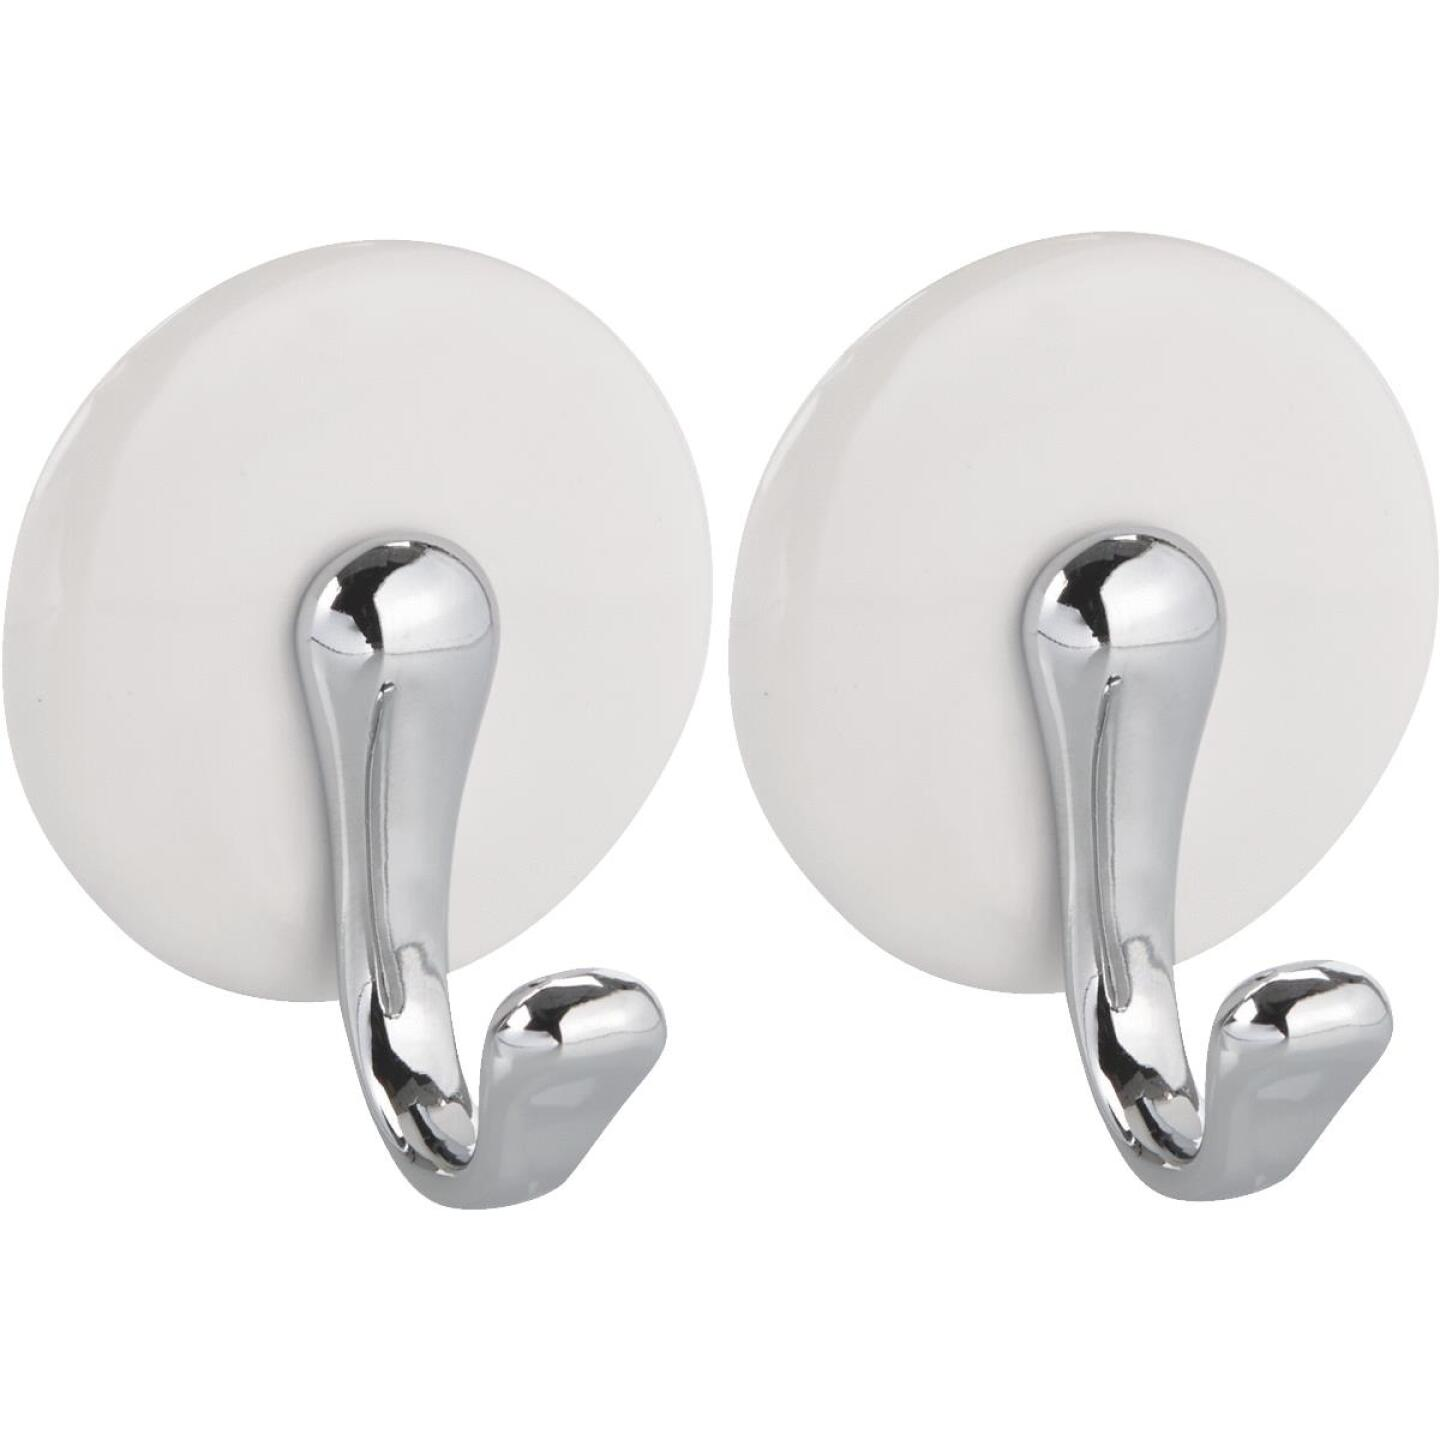 InterDesign Forma York White & Chrome Adhesive Hook Image 1